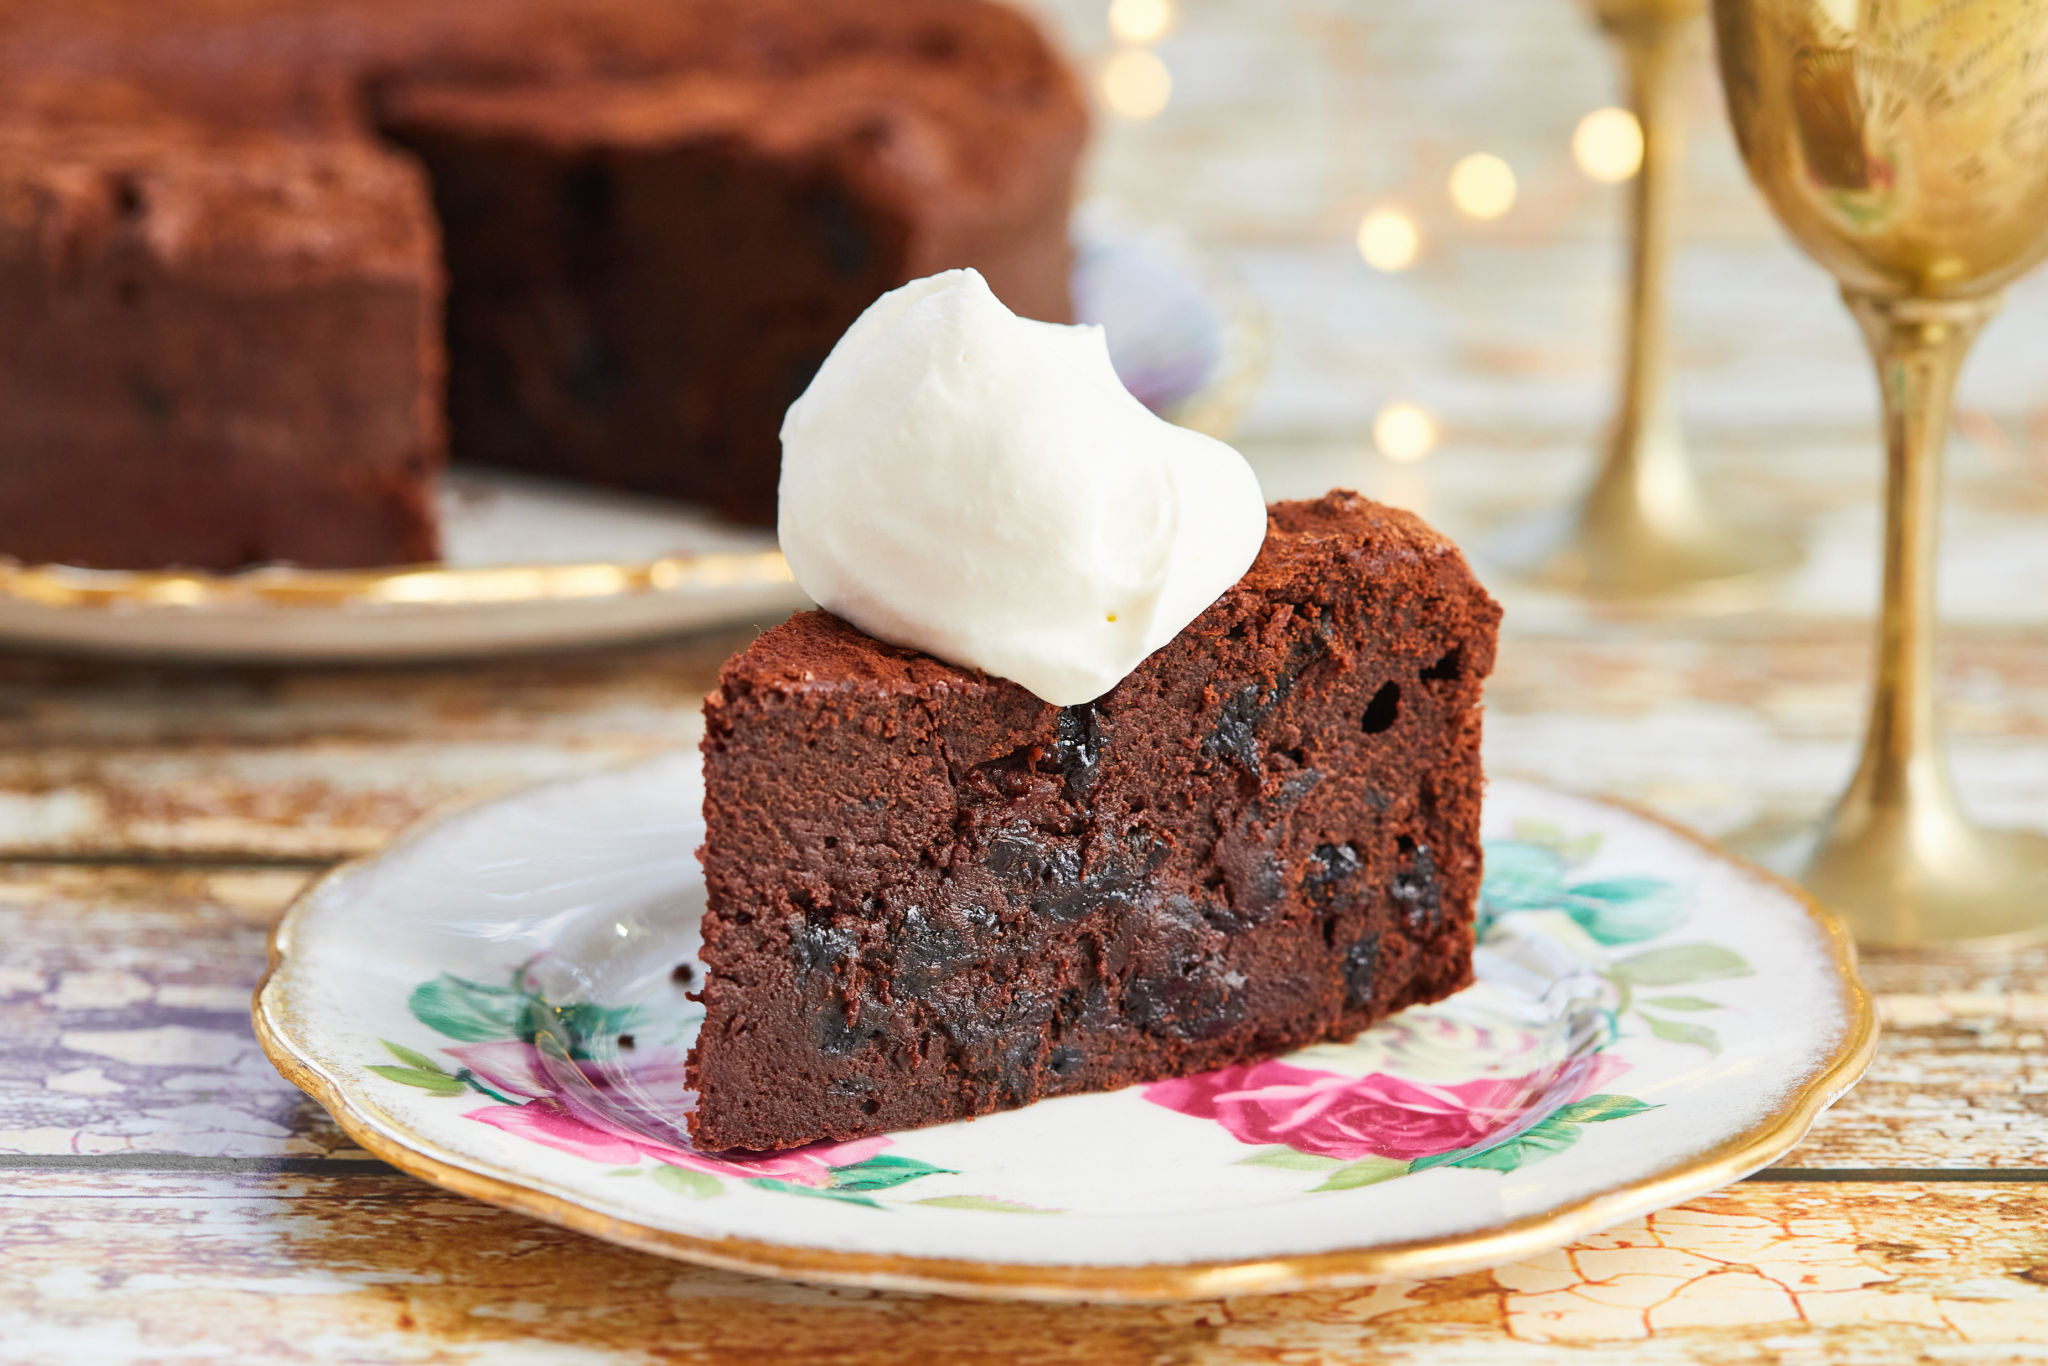 A slice of my Warm Chocolate Cake with Rum-Soaked Prunes with whipped cream on top!